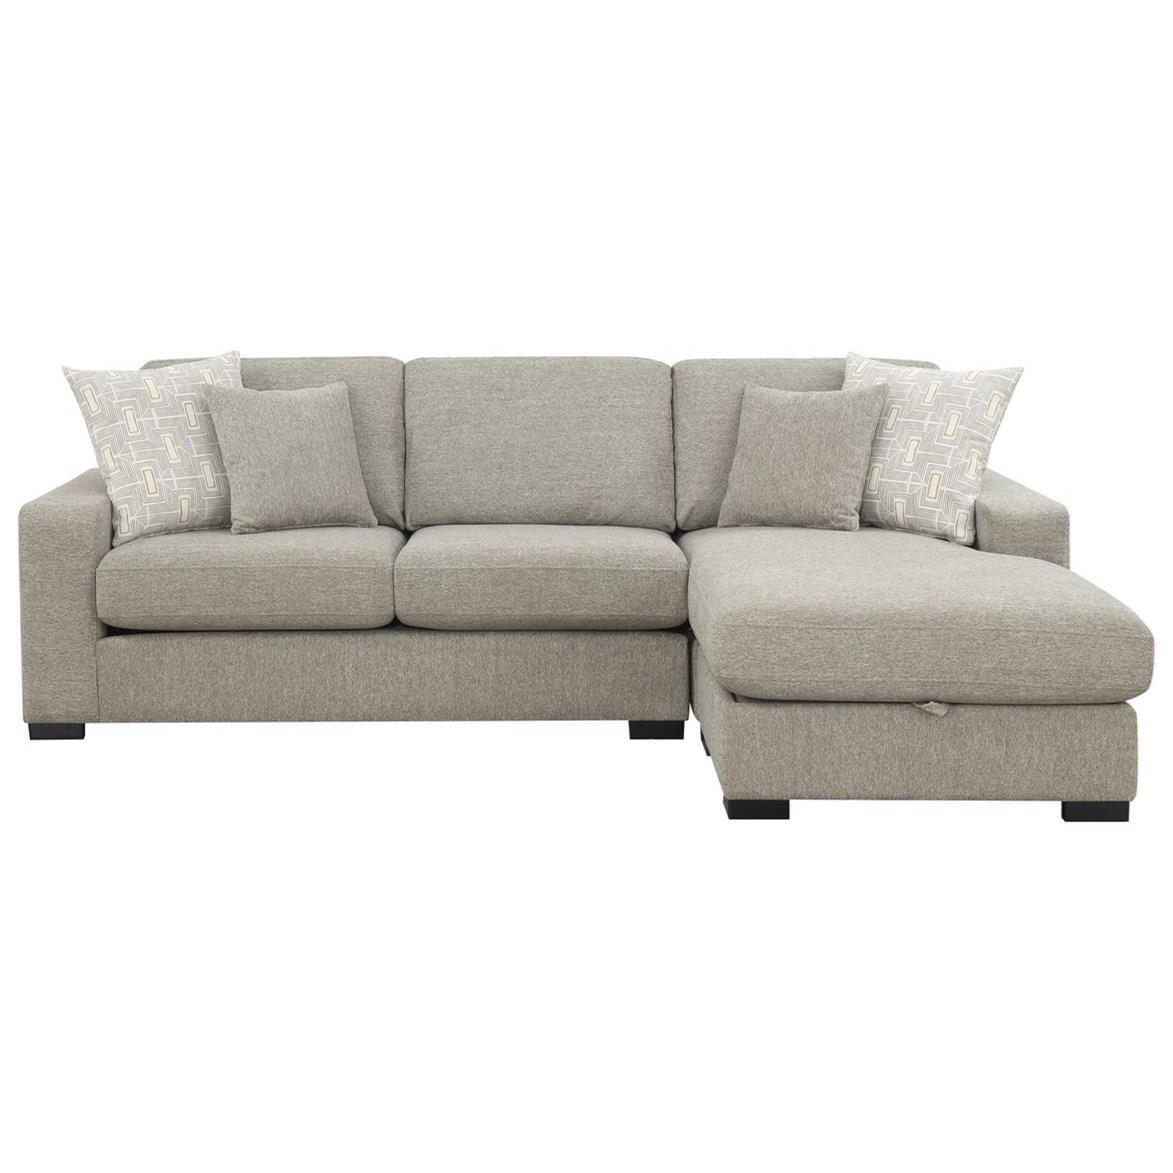 Brahms 3-Seat Chaise Sectional w/ Storage by Emerald at Northeast Factory Direct